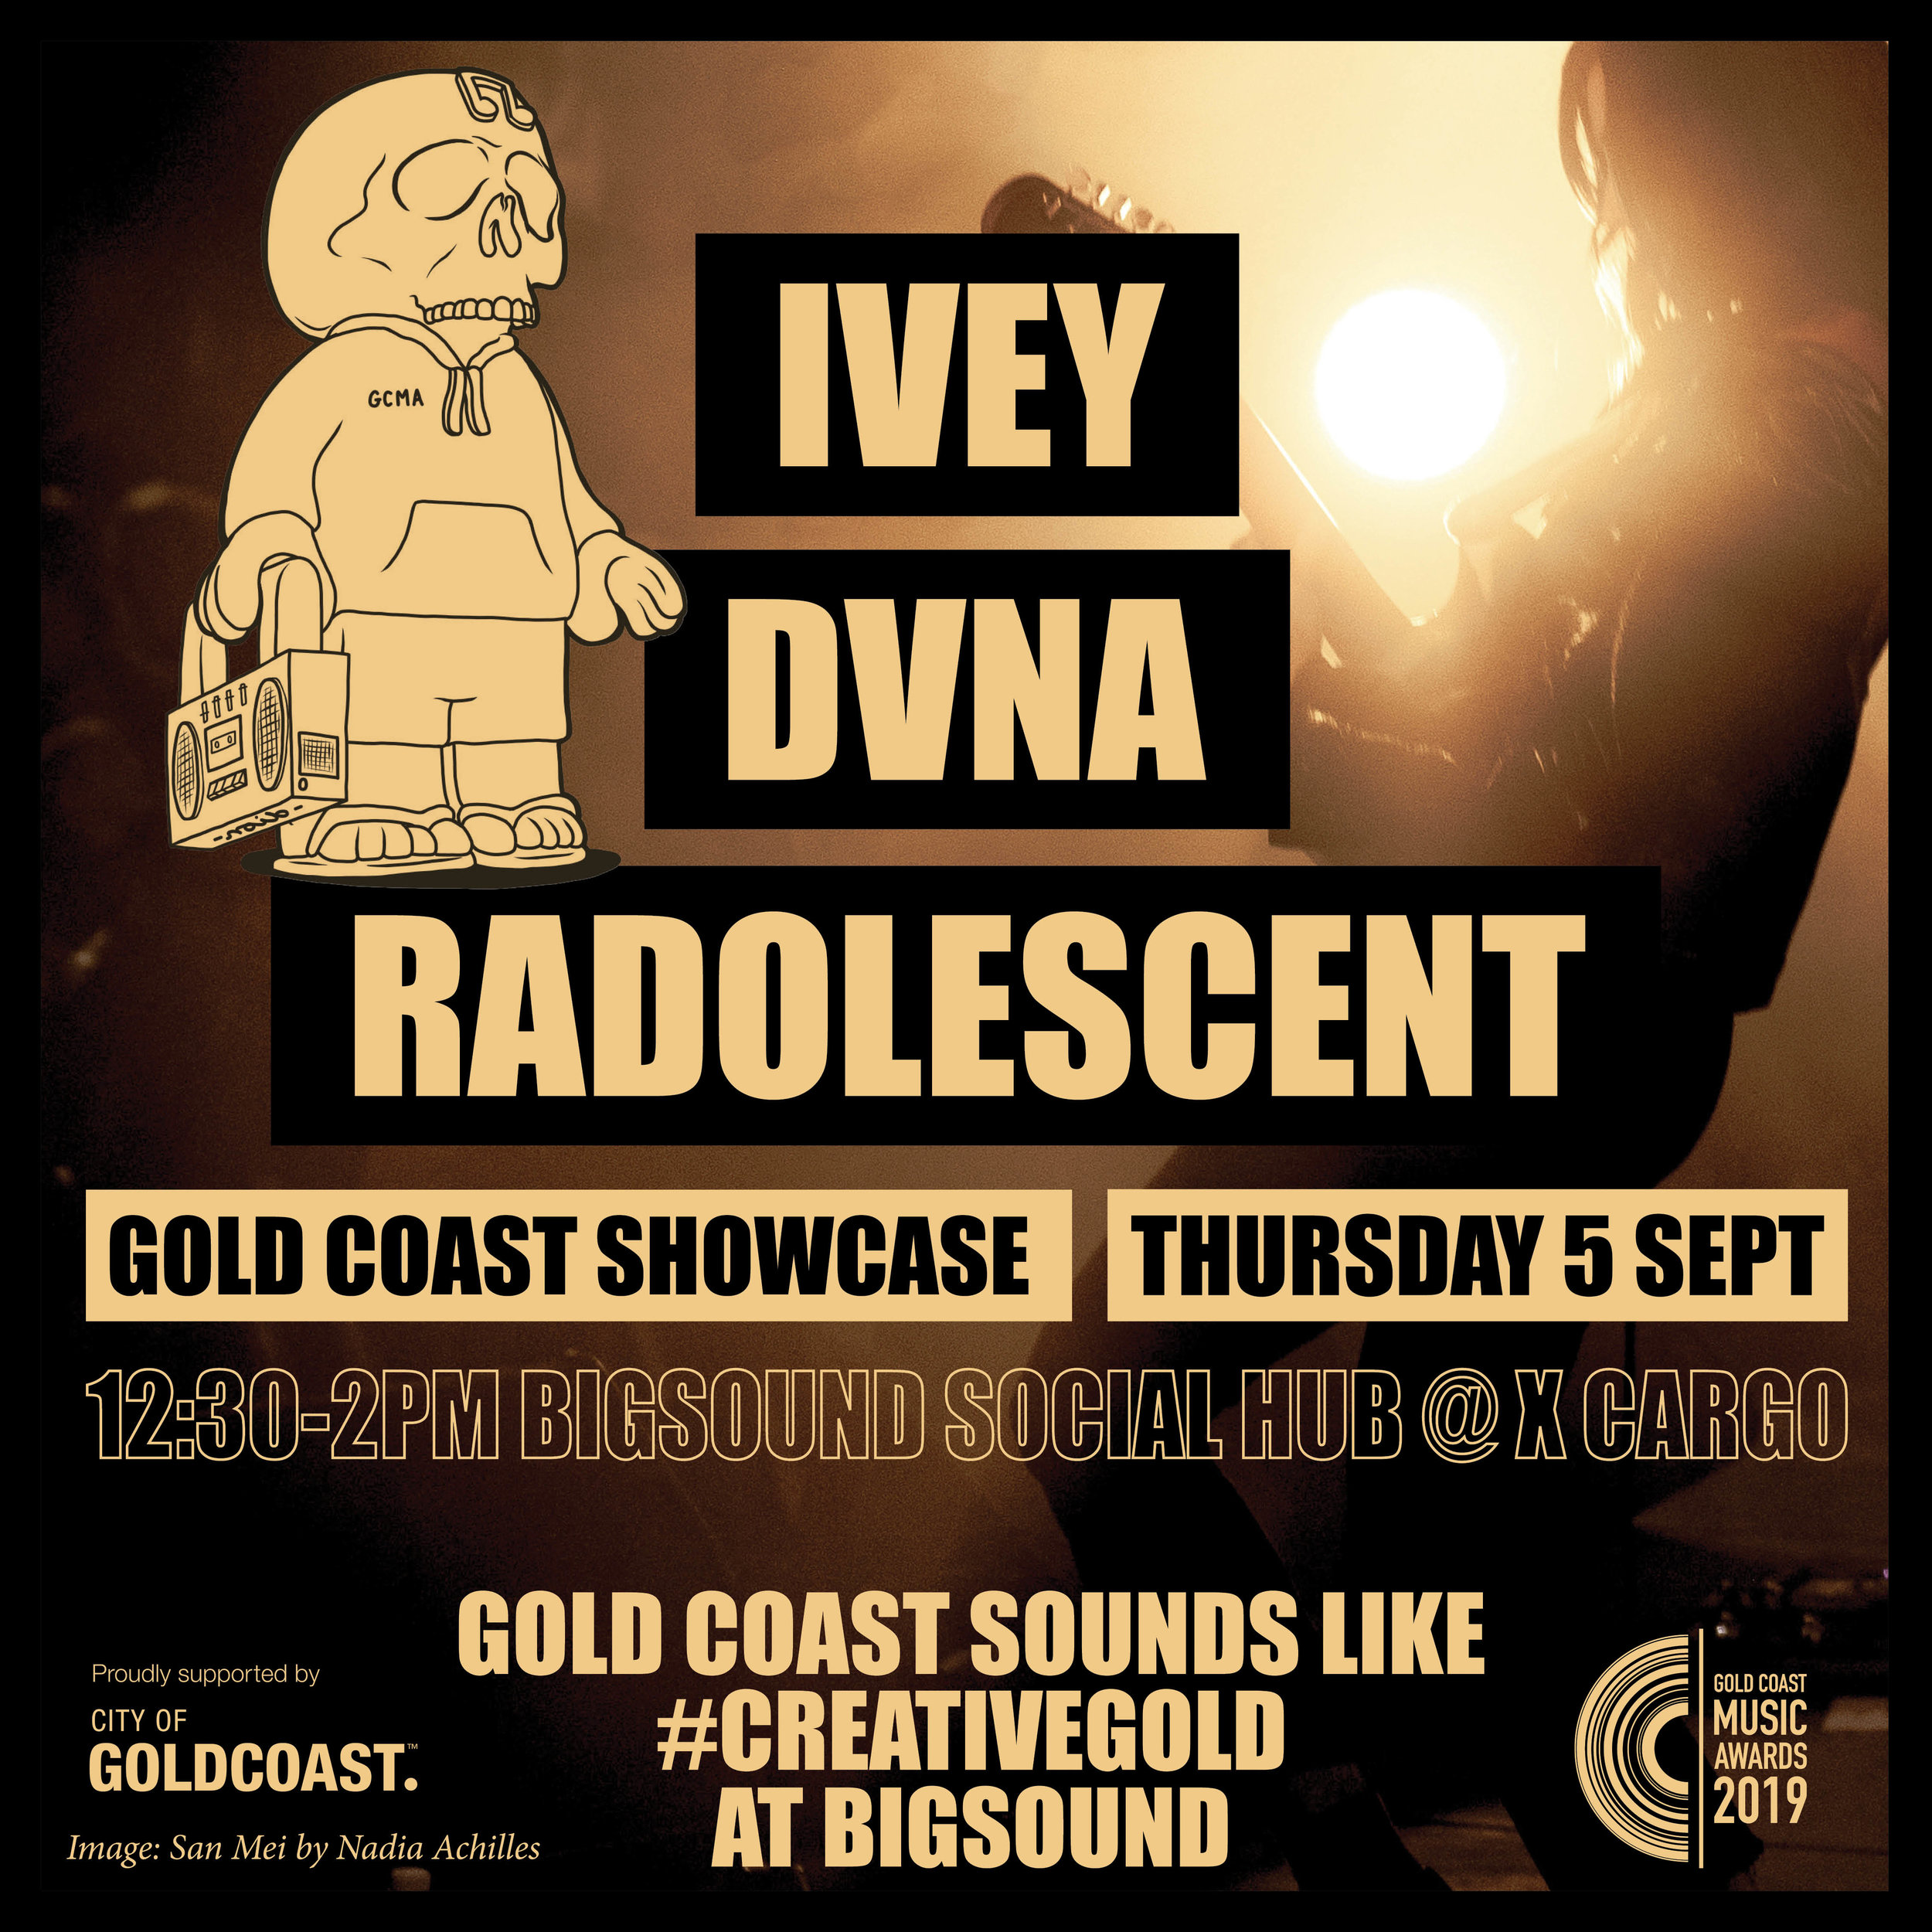 Gold Coast 2019 BIGSOUND Showcase Digital Ad.jpg